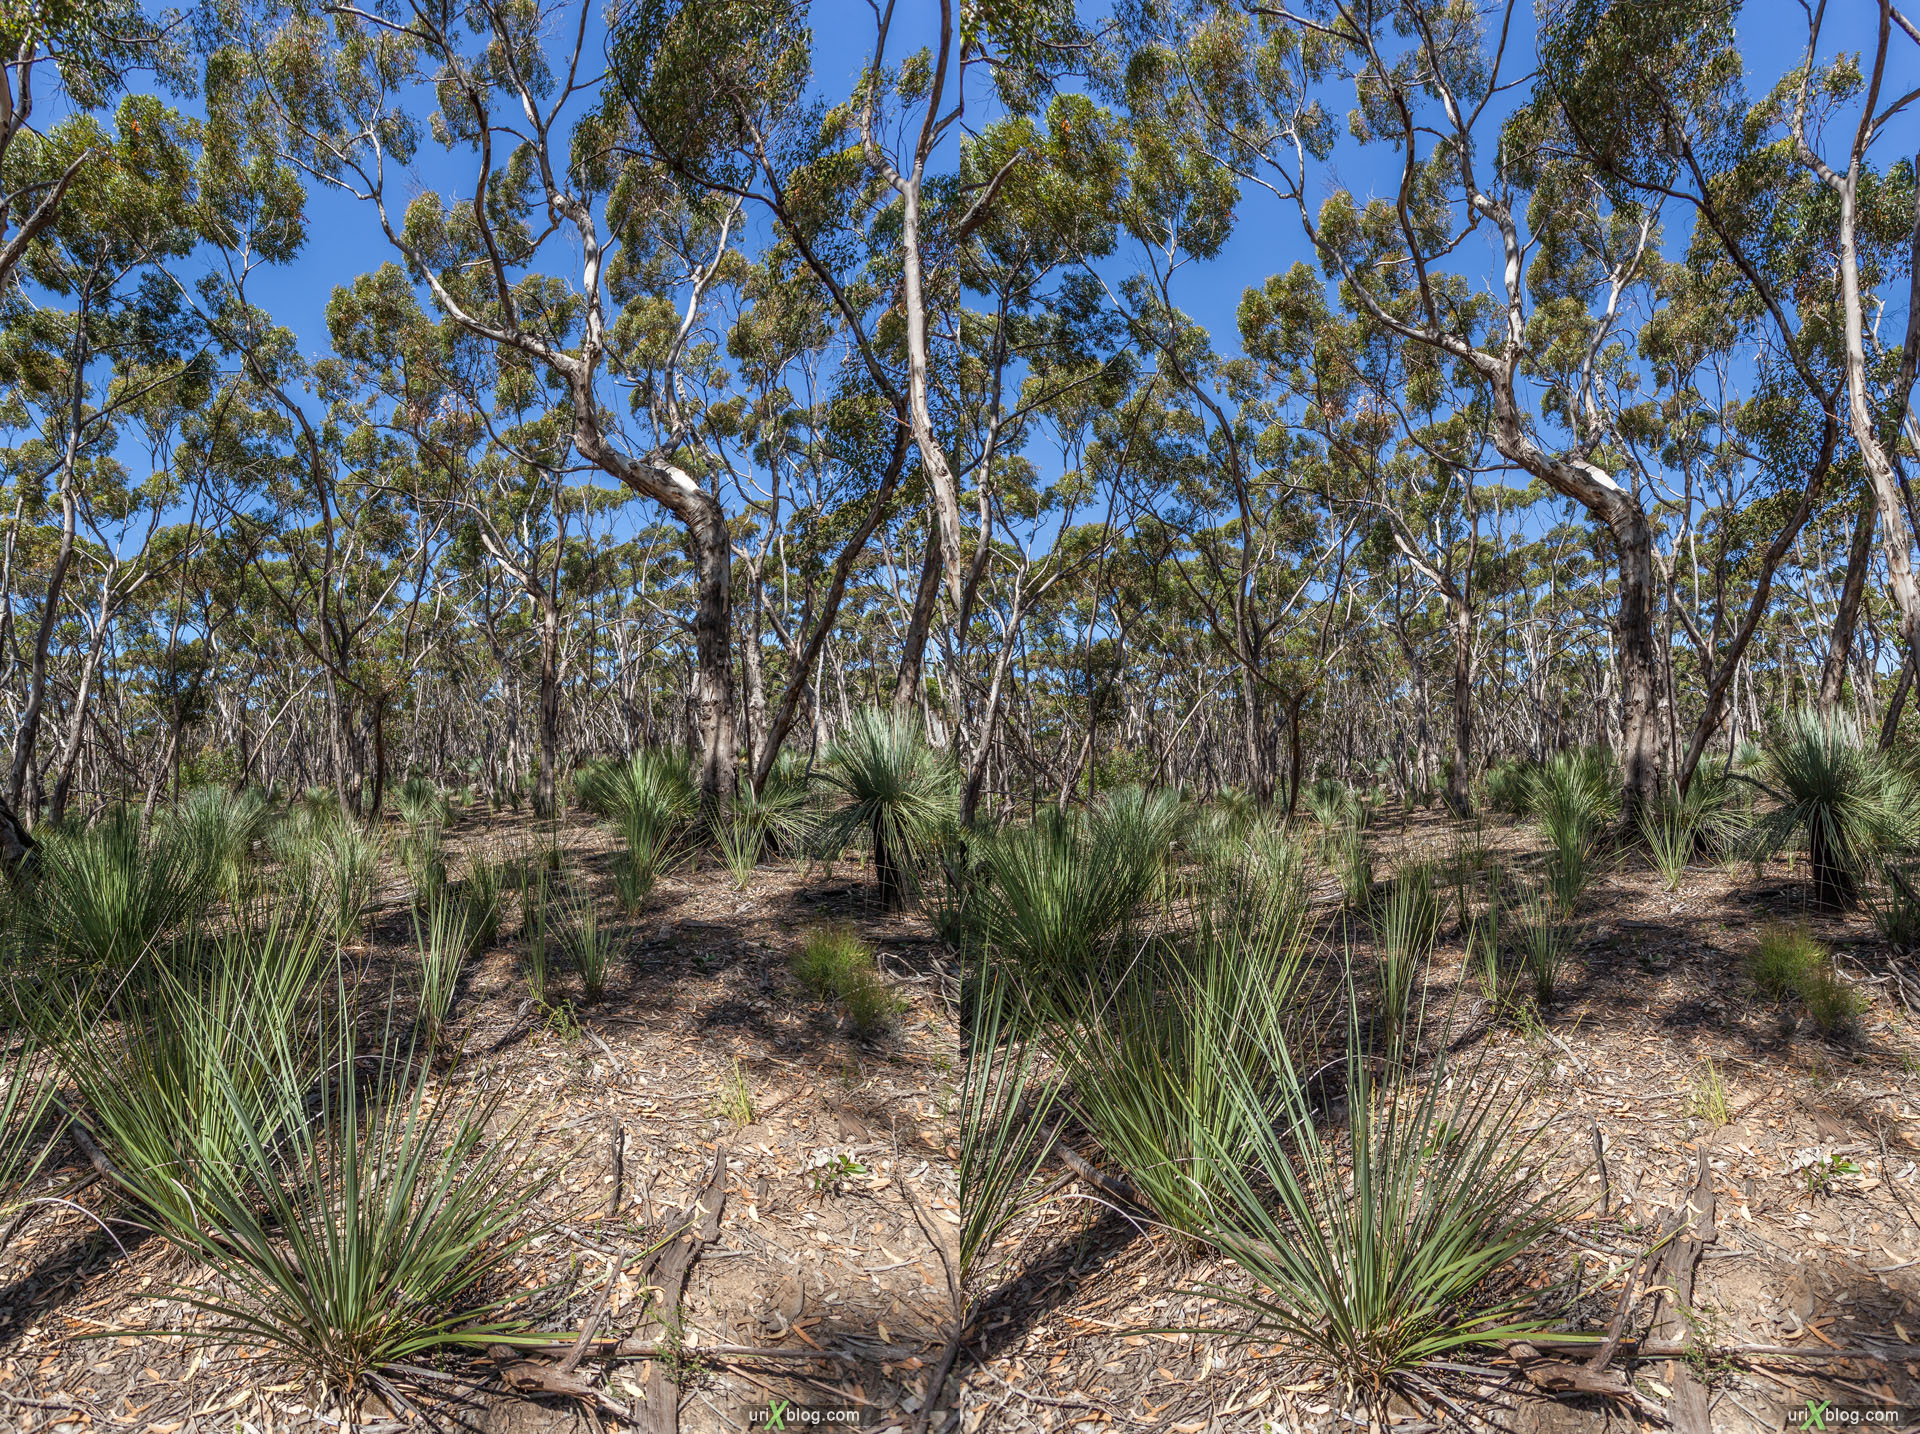 forest, Flinders Chase National Park, Kangaroo Island, Australia, 3D, stereo pair, cross-eyed, crossview, cross view stereo pair, stereoscopic, 2011